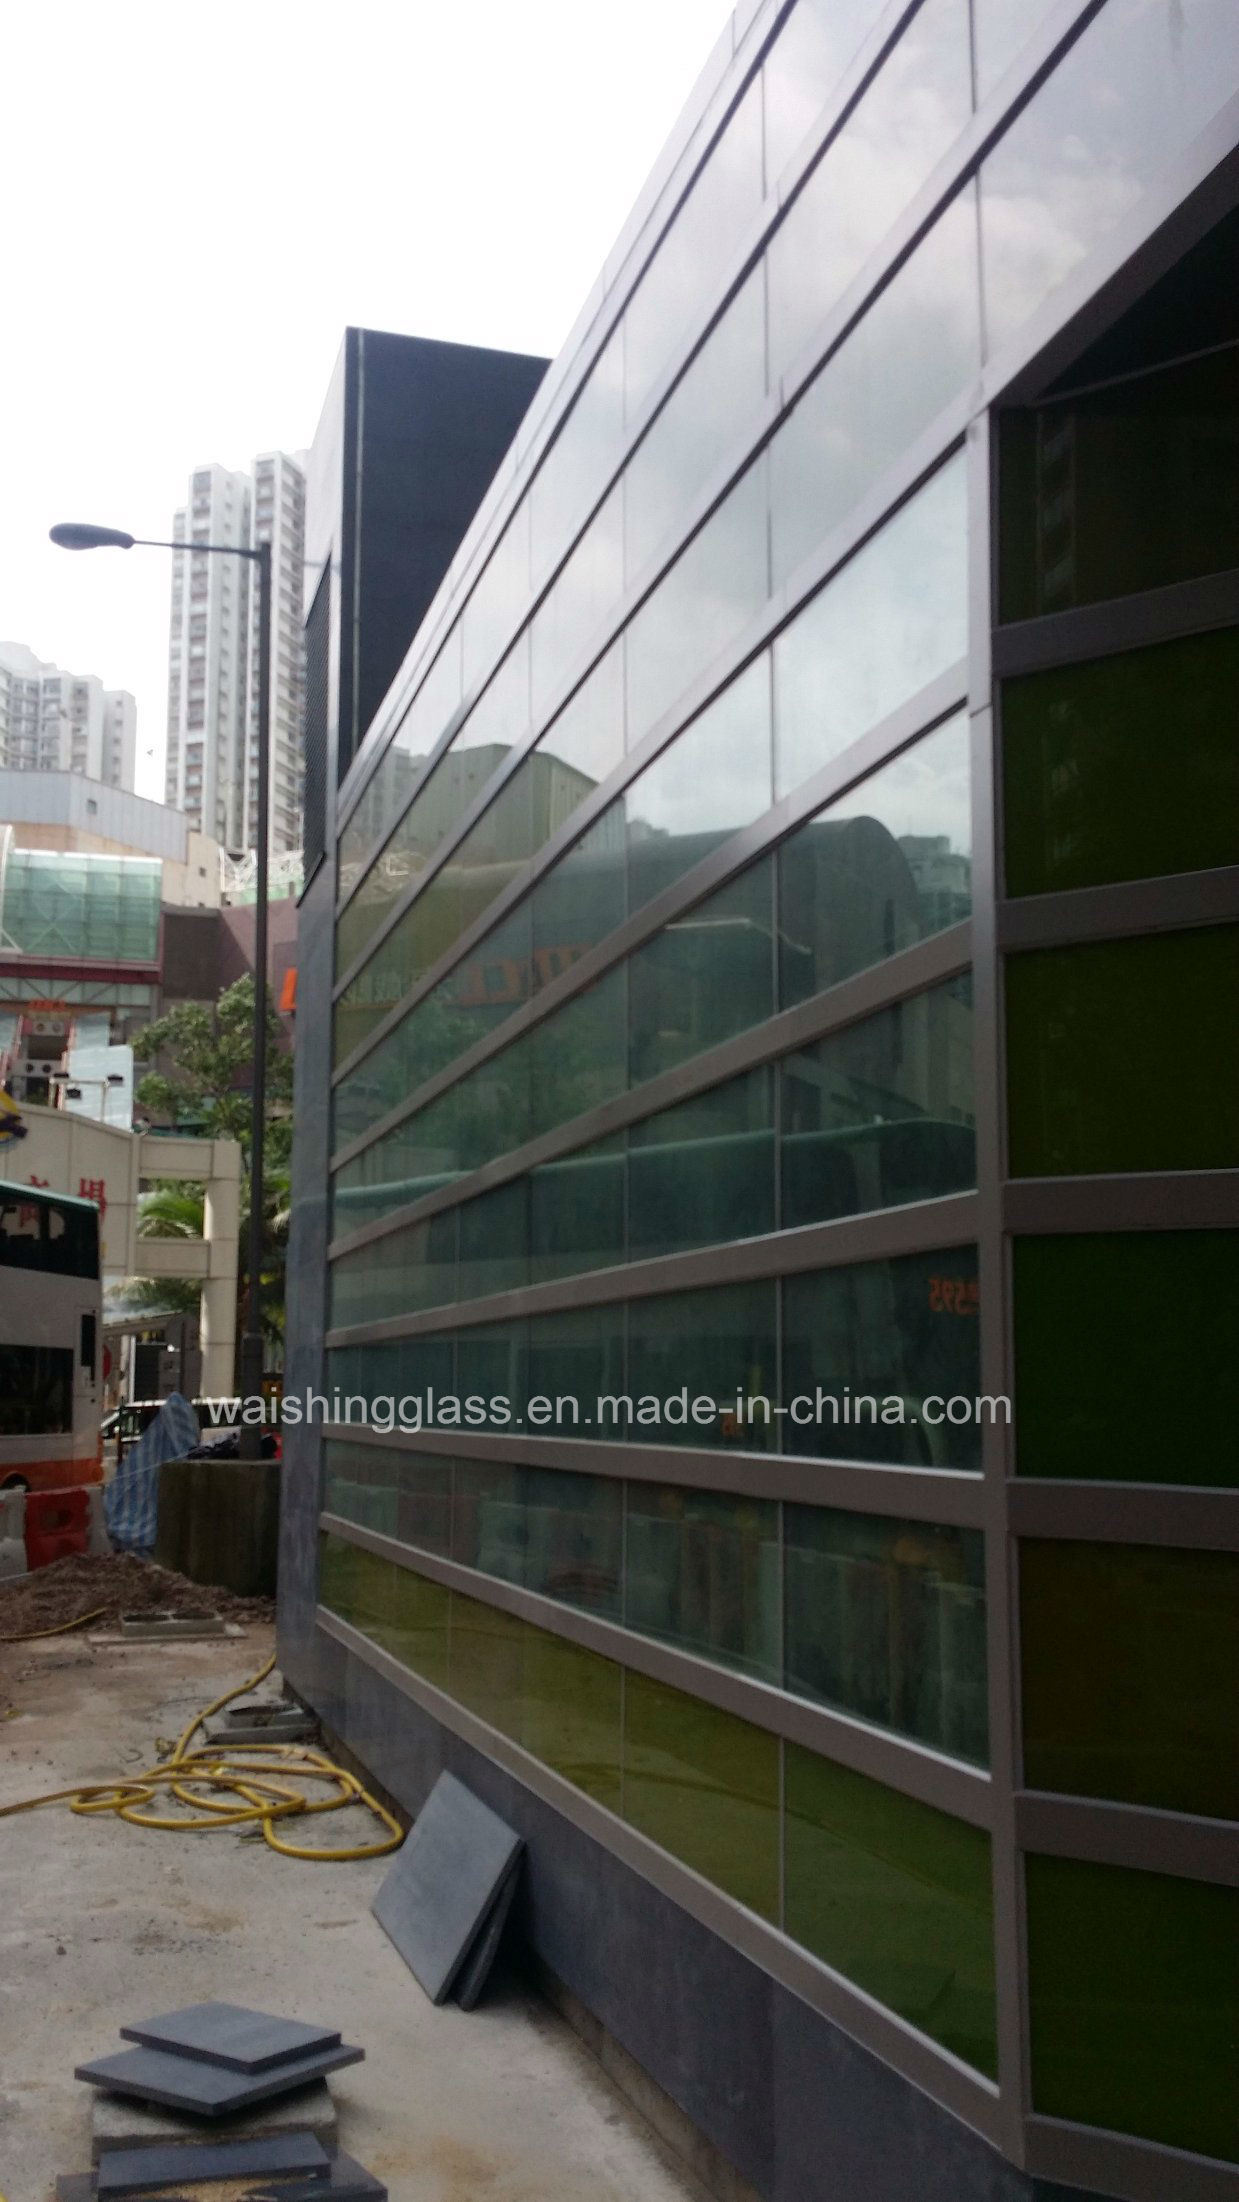 6mm Tempered/Toughened Laminated Glass for Curtain Wall with Ceramic Fritted